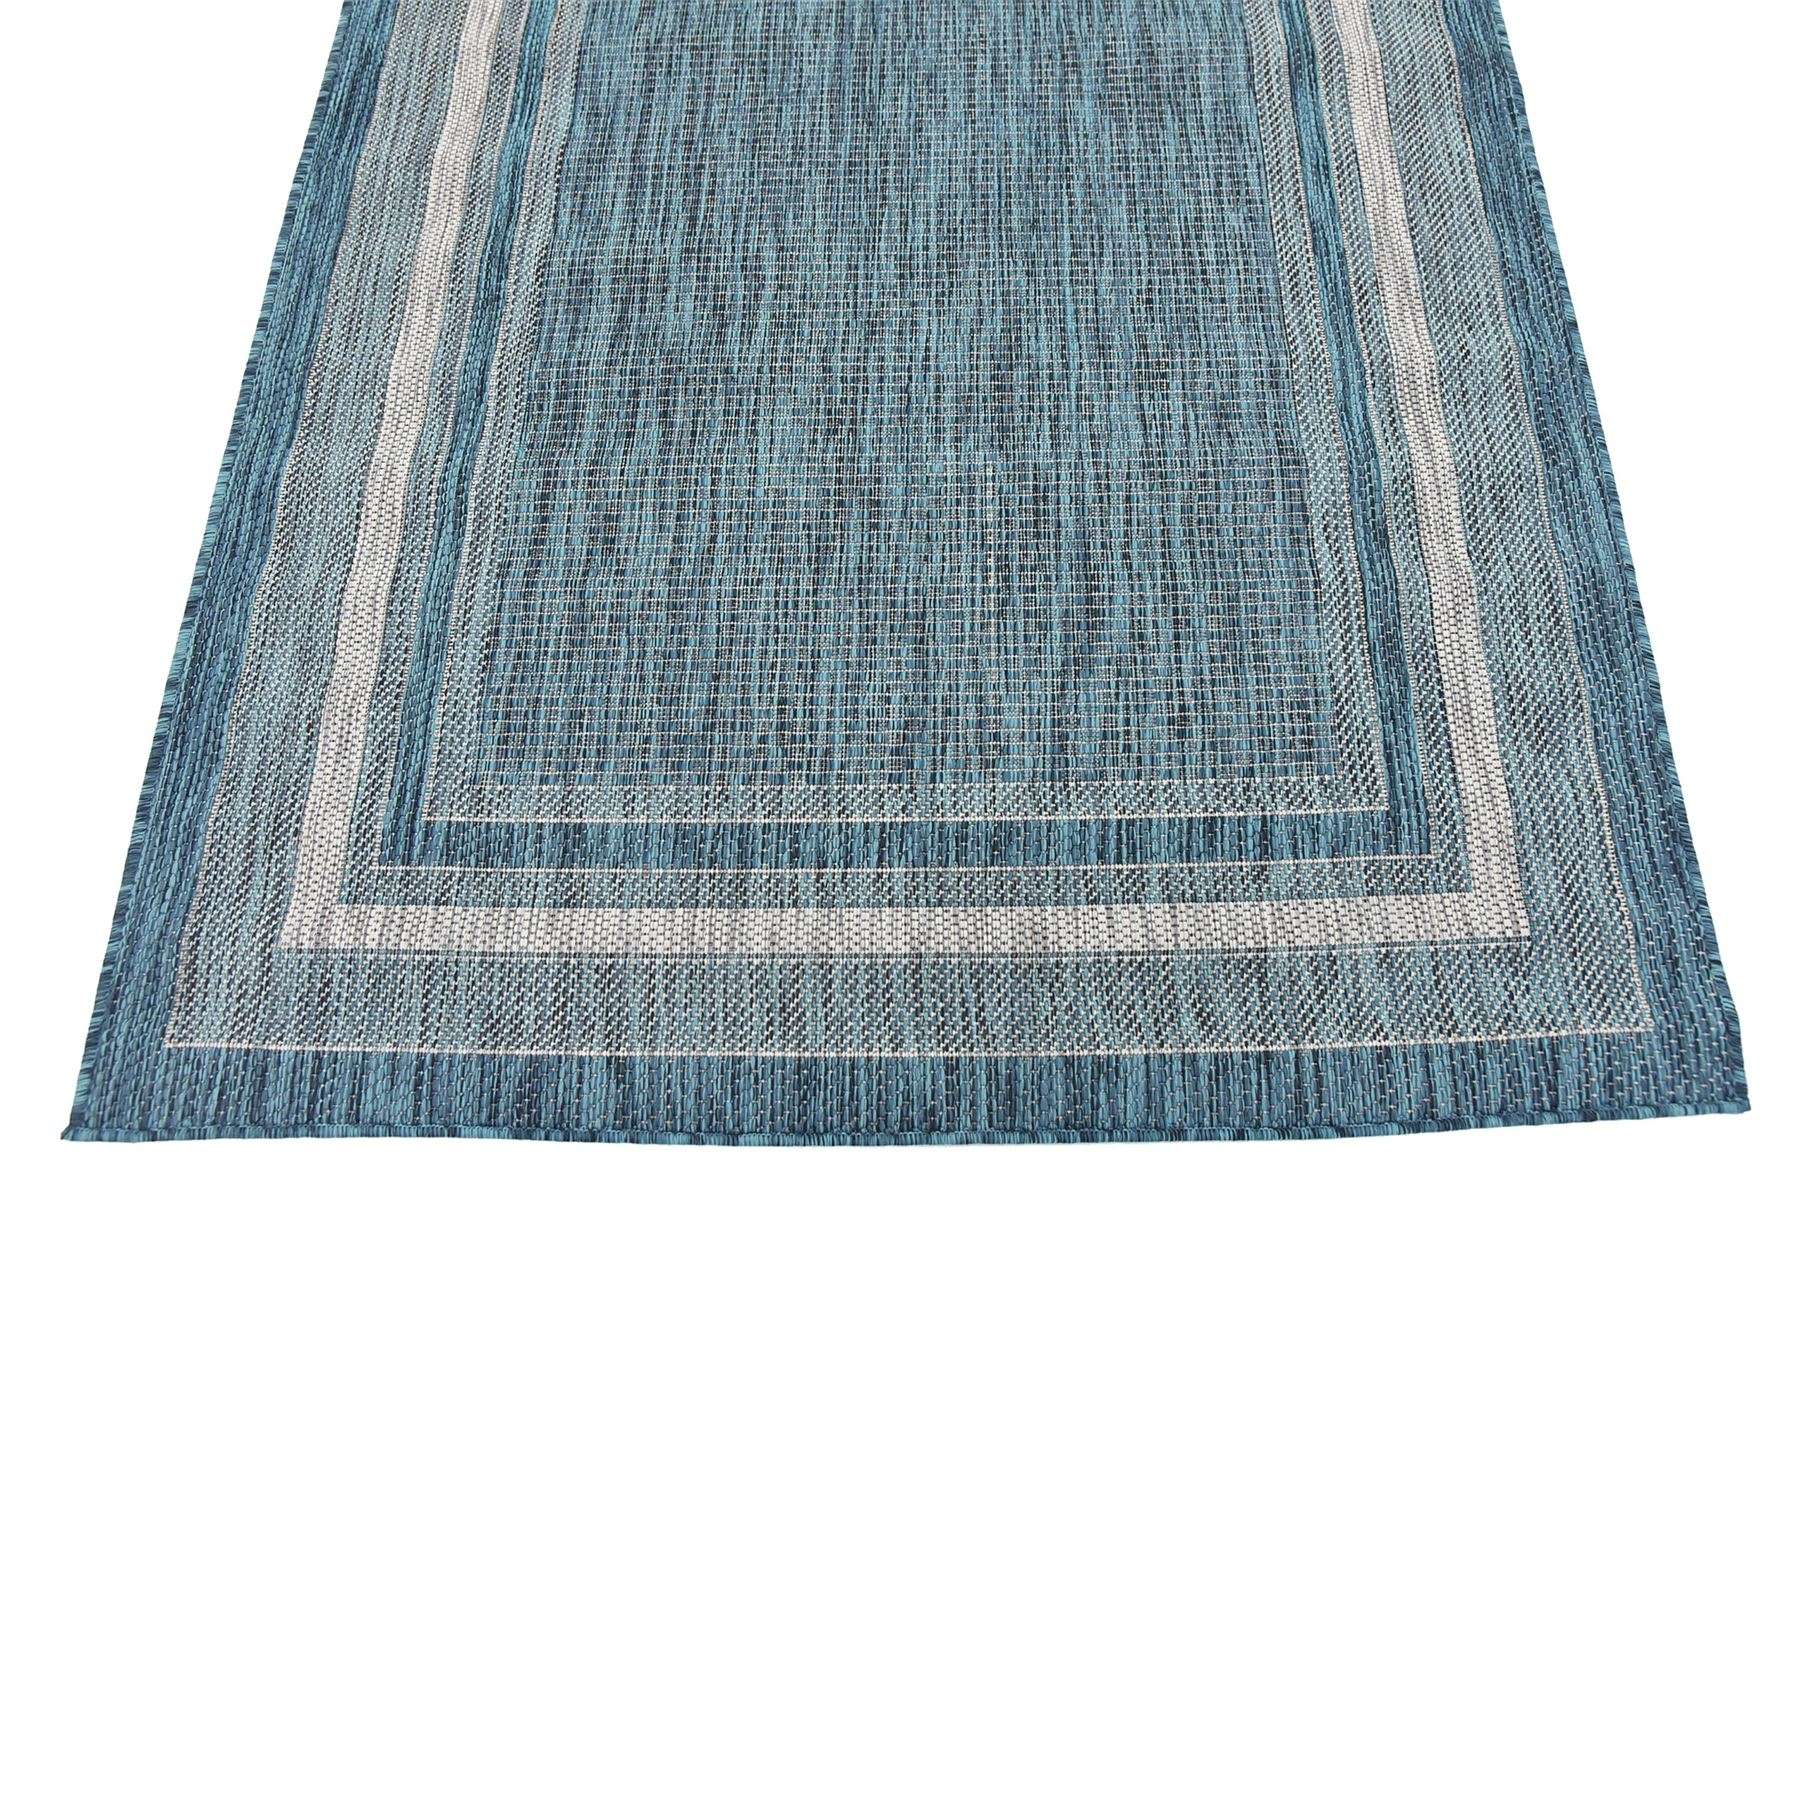 Teal 4' X 6' Outdoor Area Rugs Modern Carpets Rug